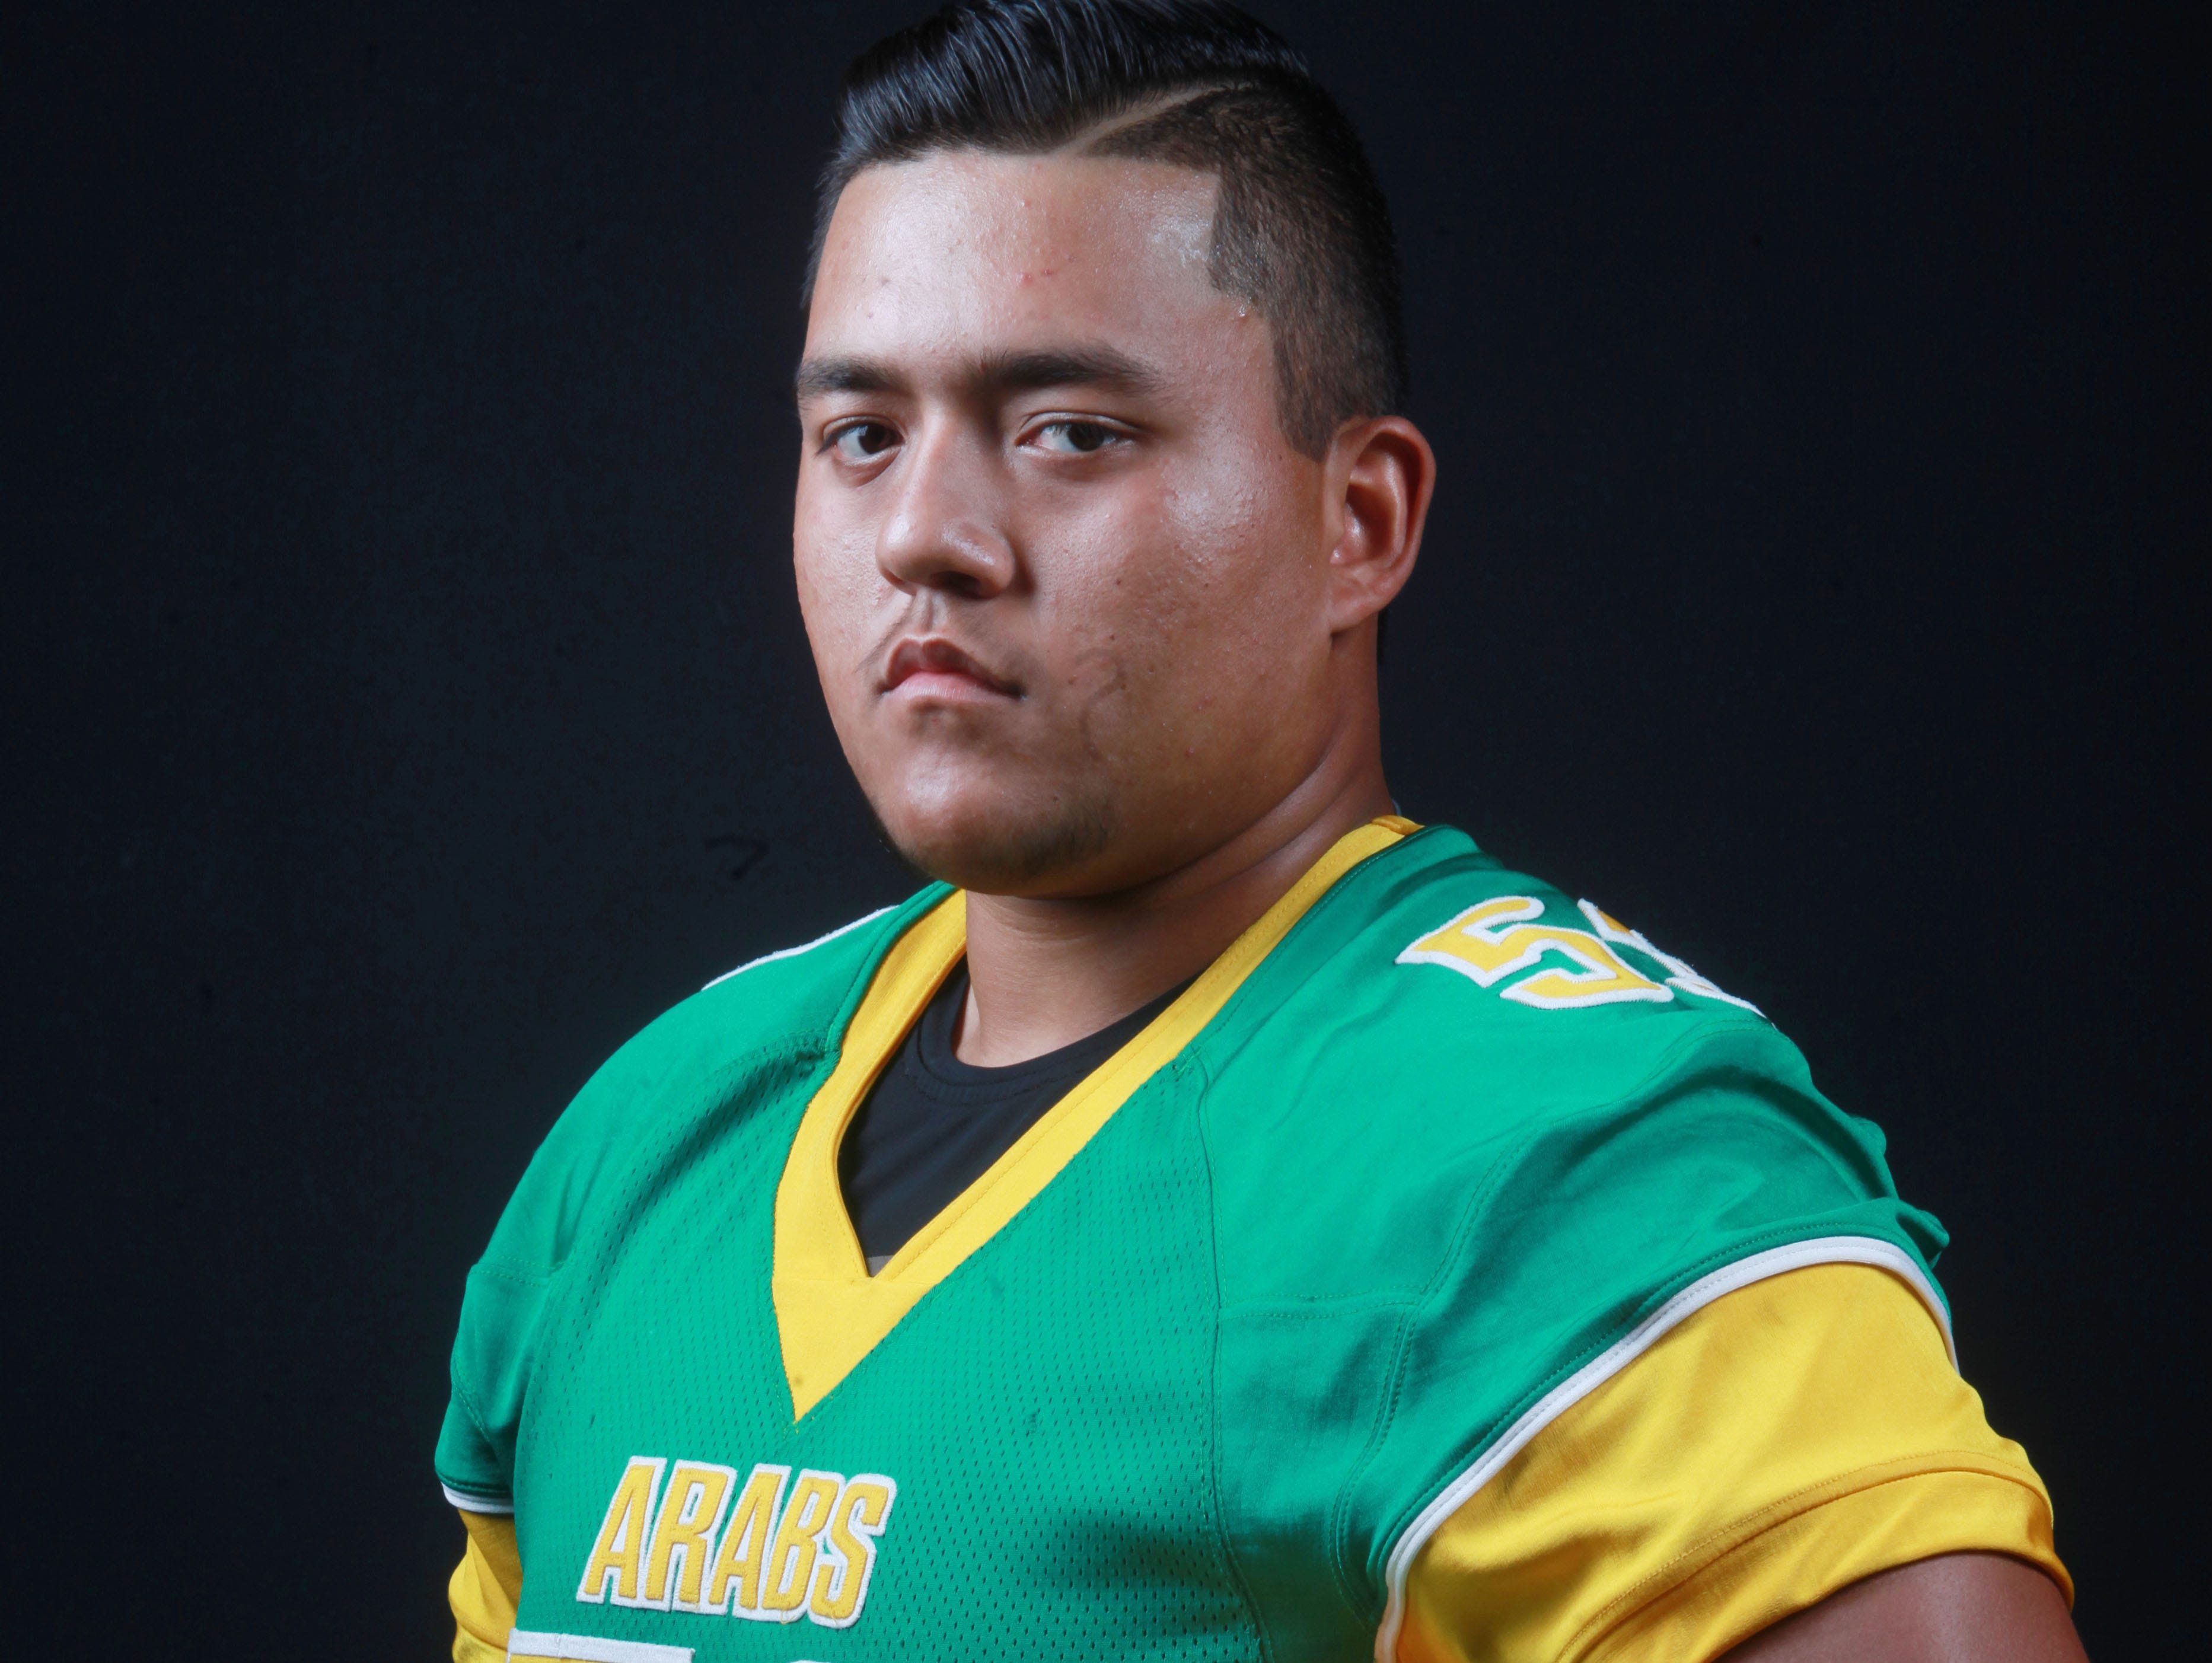 Coachella Valley High School lineman Nick Hernandez is photographed as one of the 11 elite athletes of the Coachella Valley.